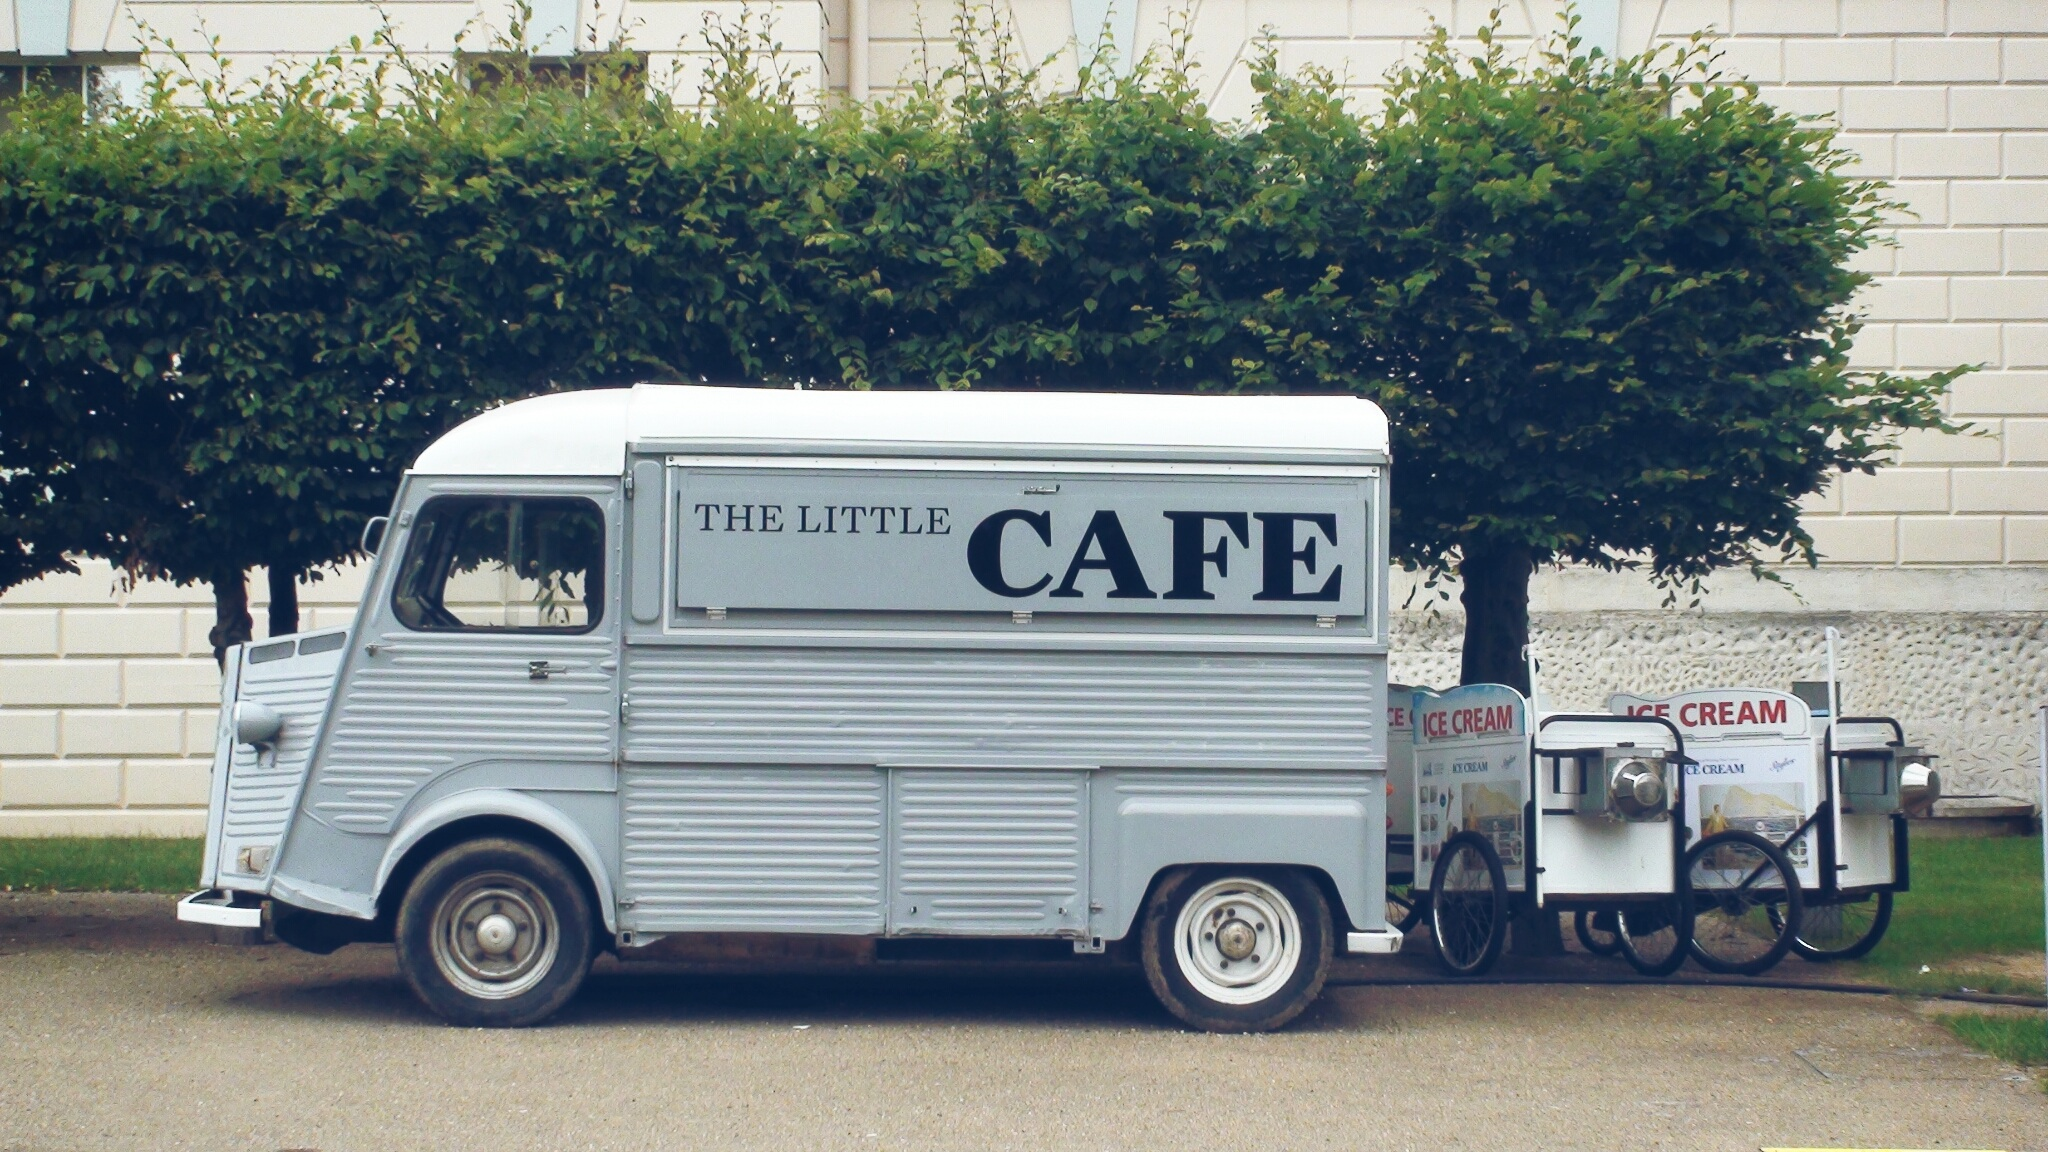 Night School with Board & Vellum: The Architecture of Small Business – Café Truck